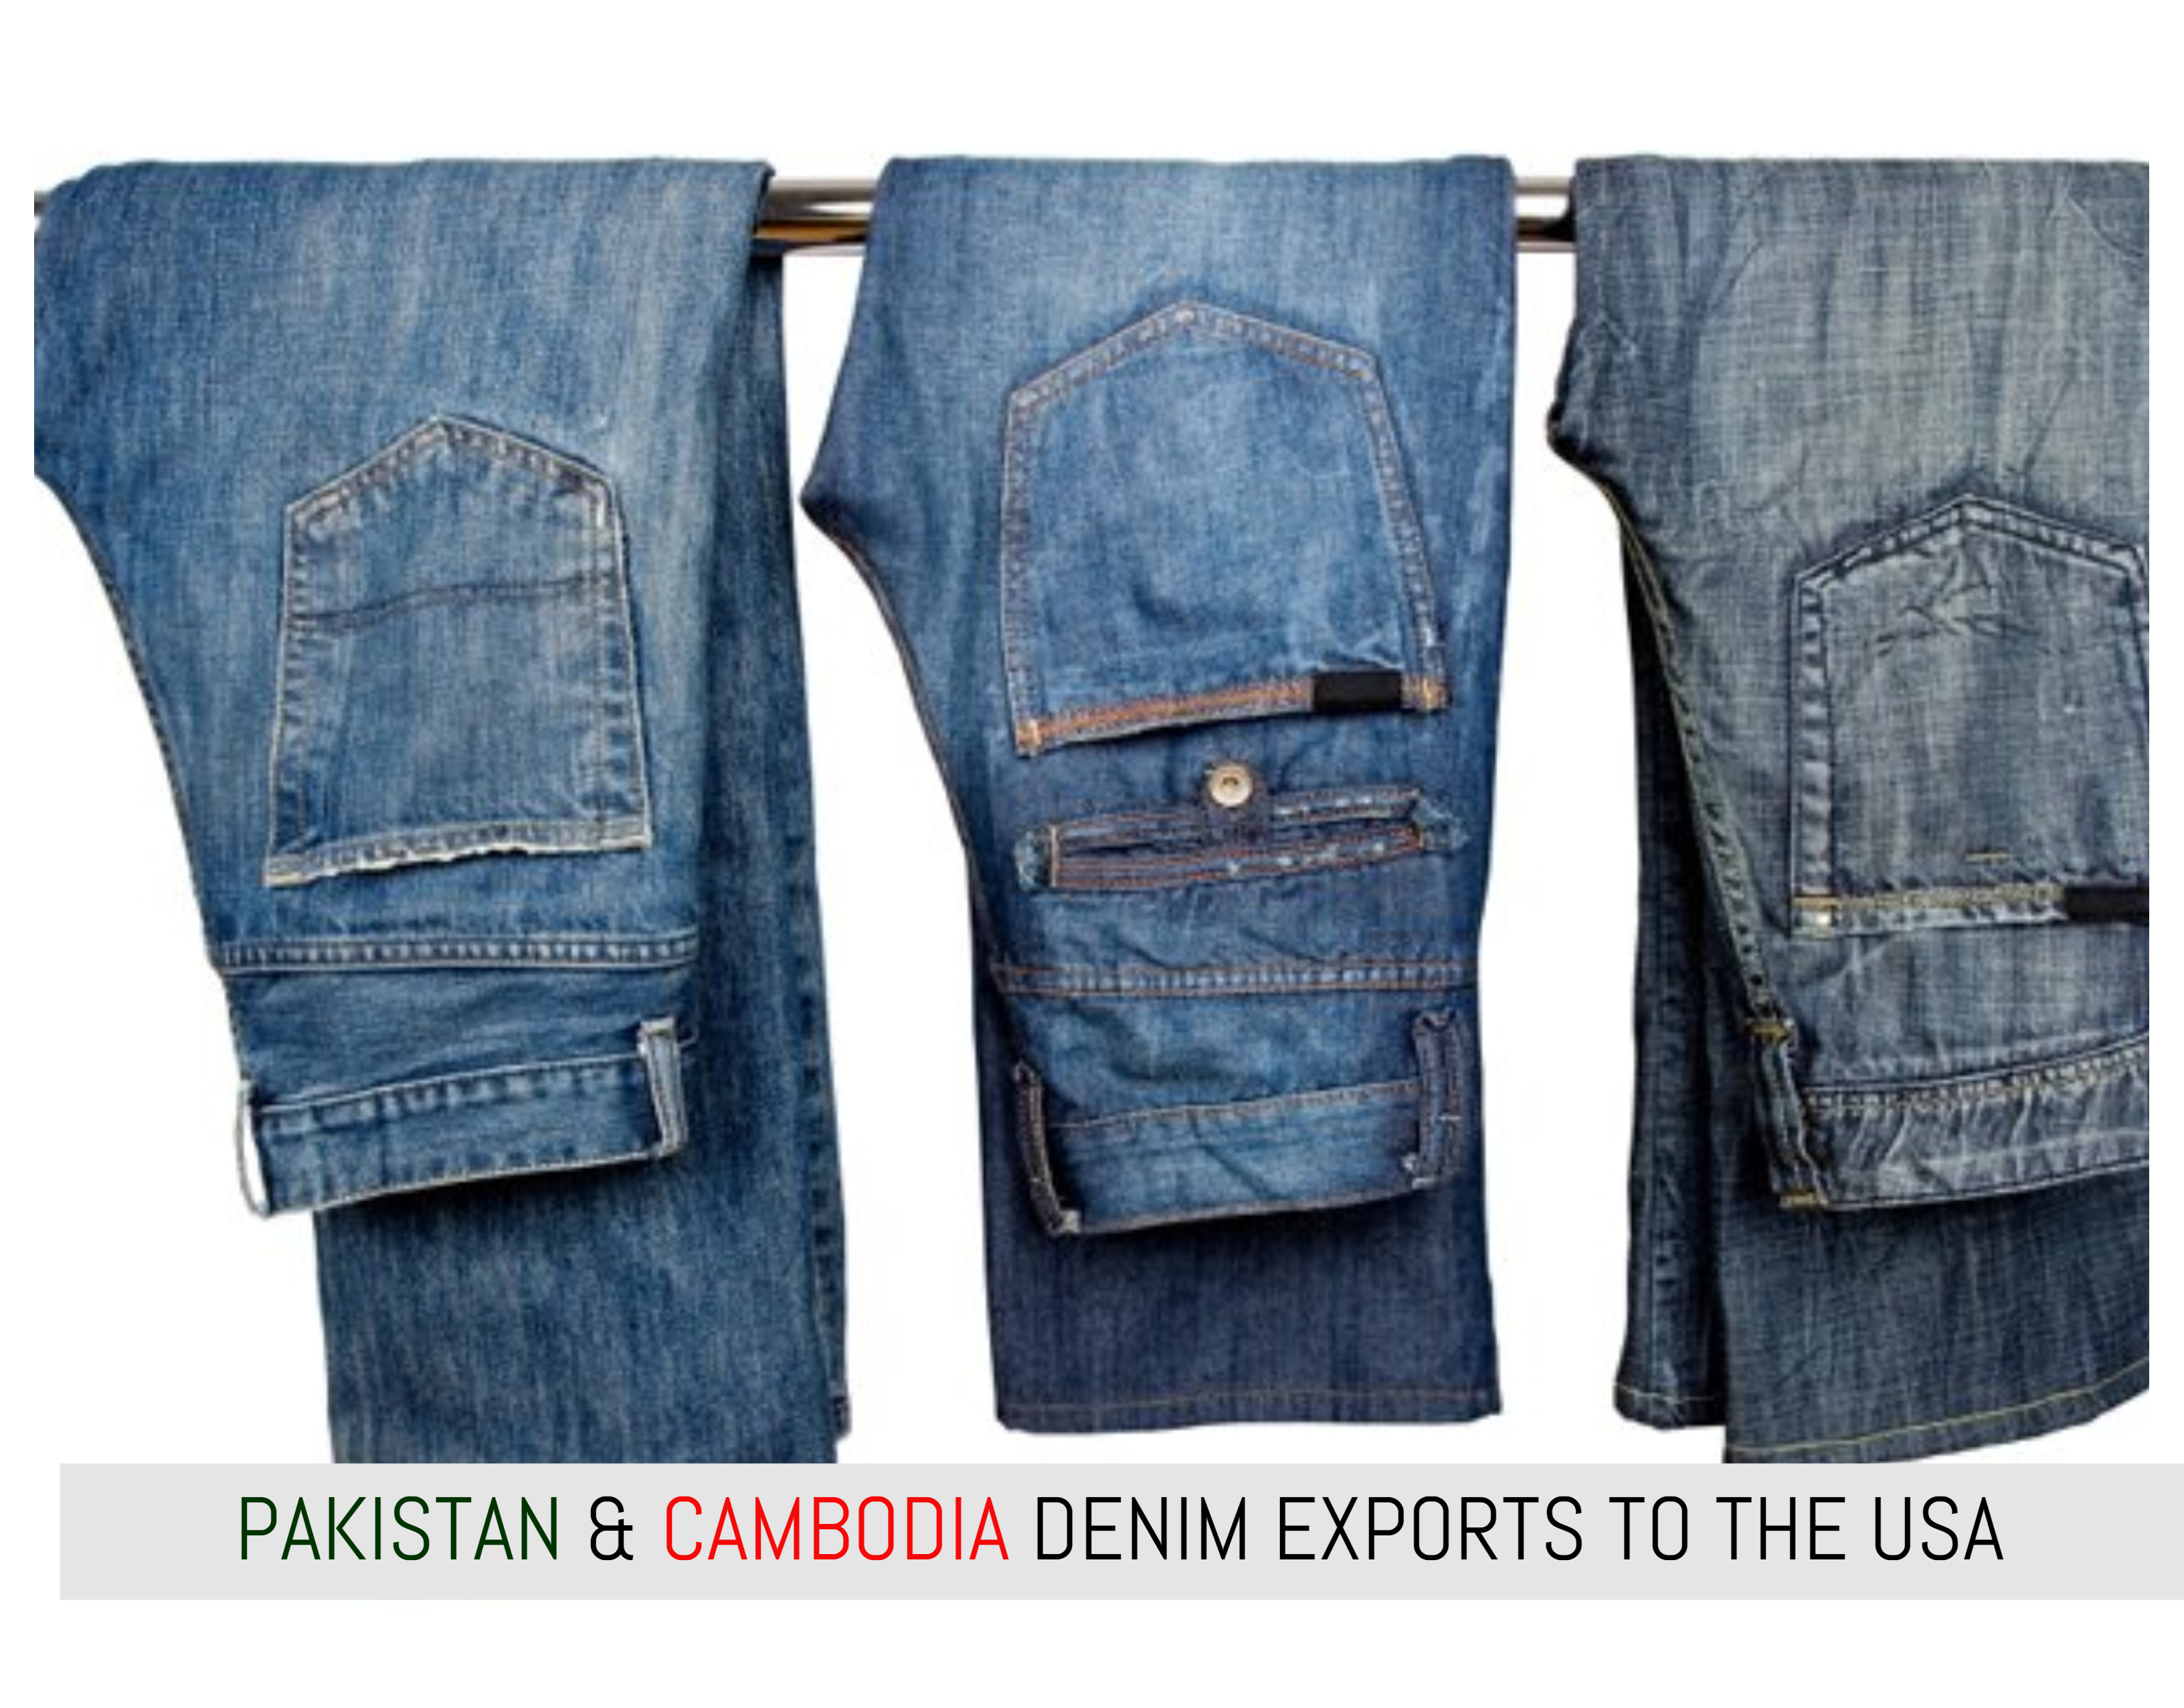 Cambodia Exports Of Denim To USA  Expected To Grow Faster Than Pakistan In 2018